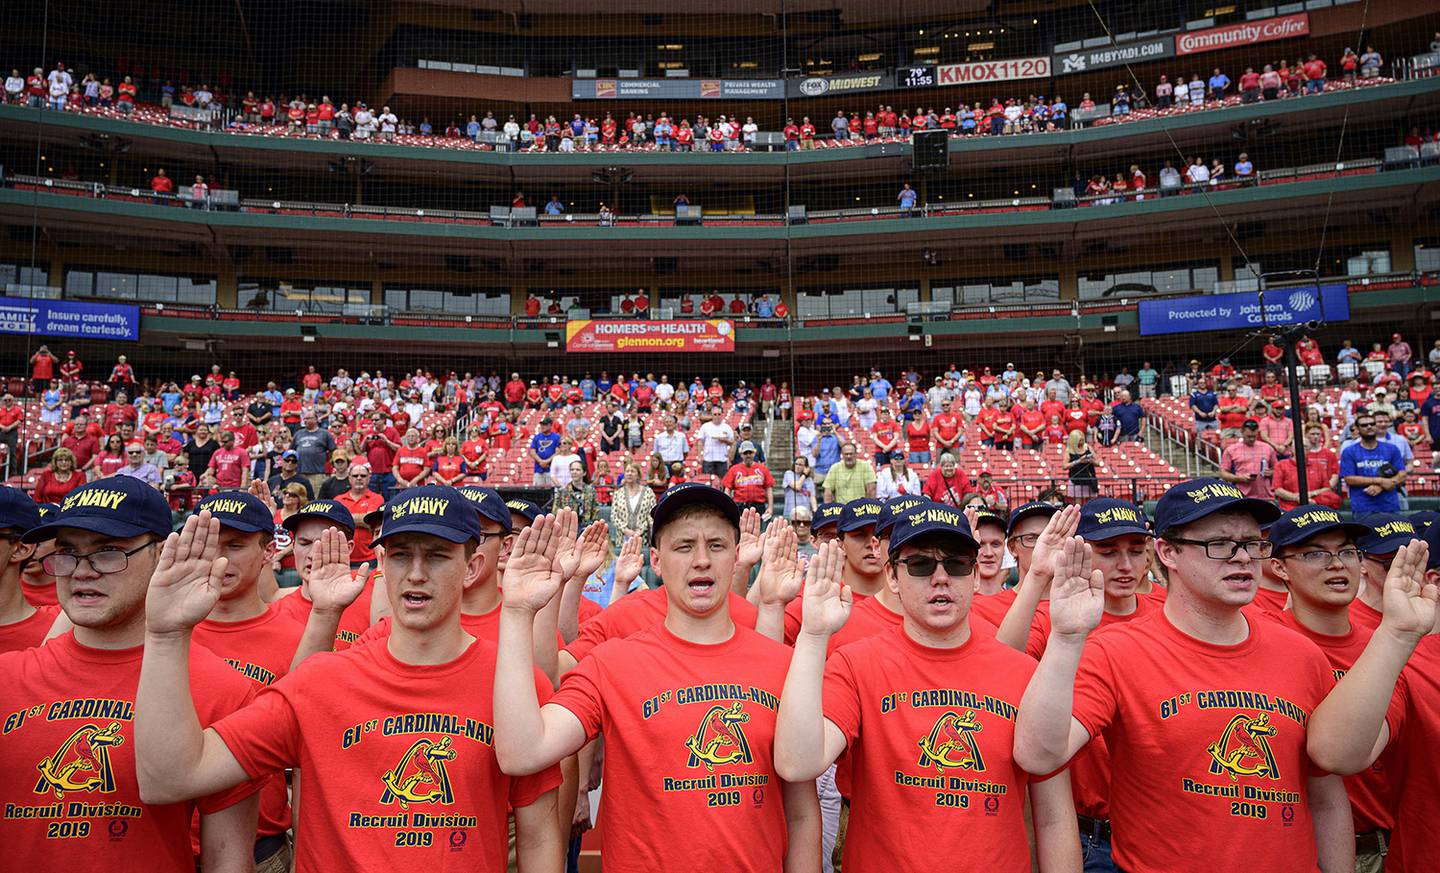 Eighty-one recruits with the 61st Annual Recruit Cardinal Division recite the oath of enlistment at Busch Stadium during a pre-game ceremony, June 6, 2019, in St. Louis.